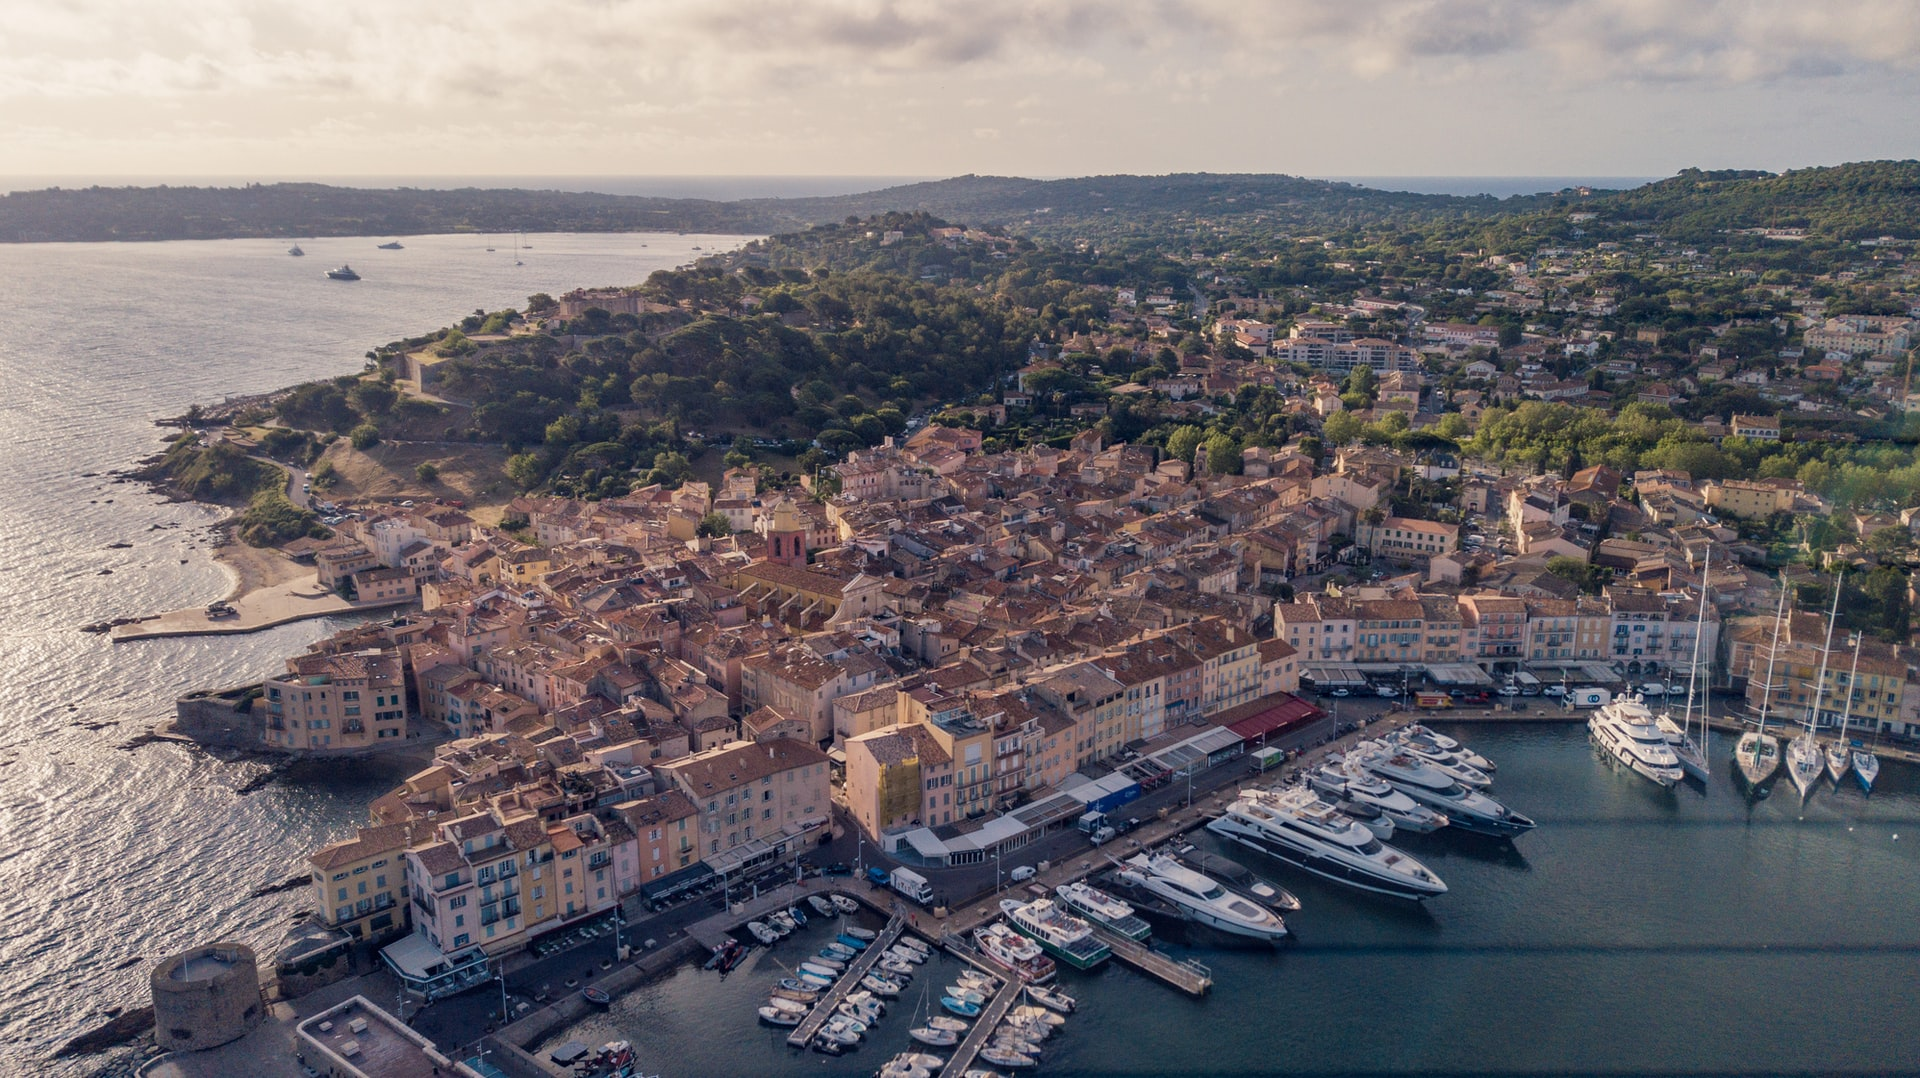 The Port of Saint Tropez